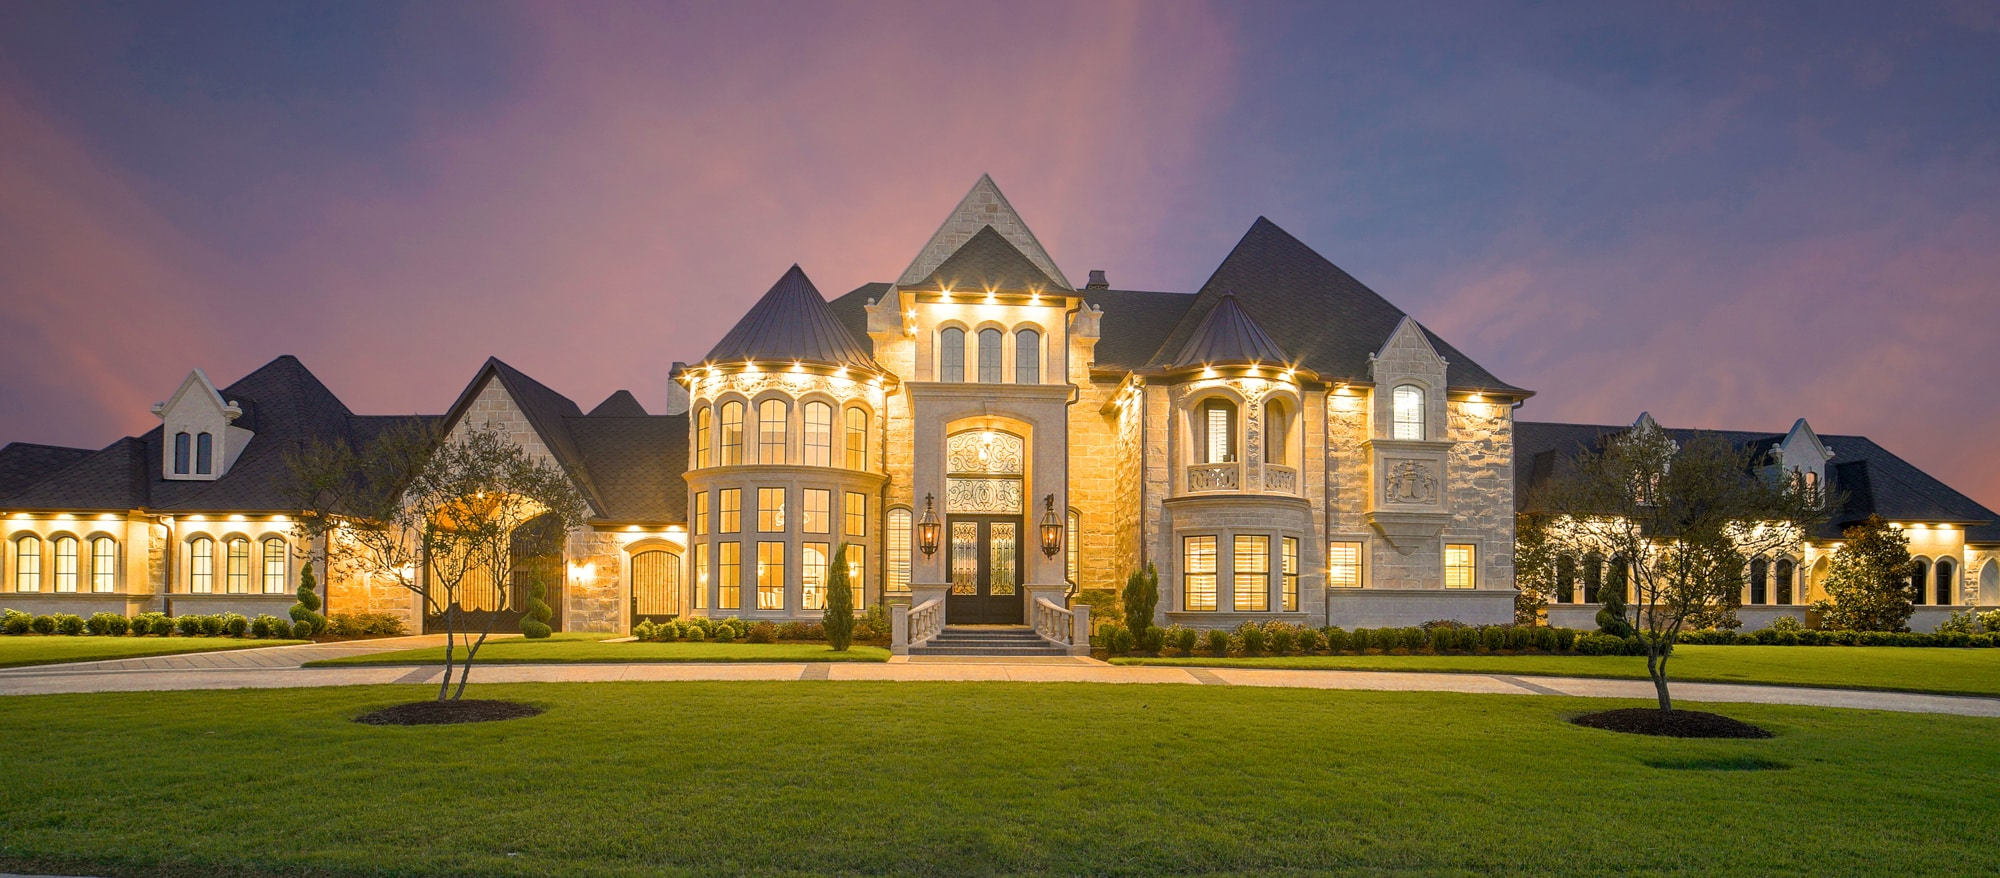 Well-lit mansion at twilight